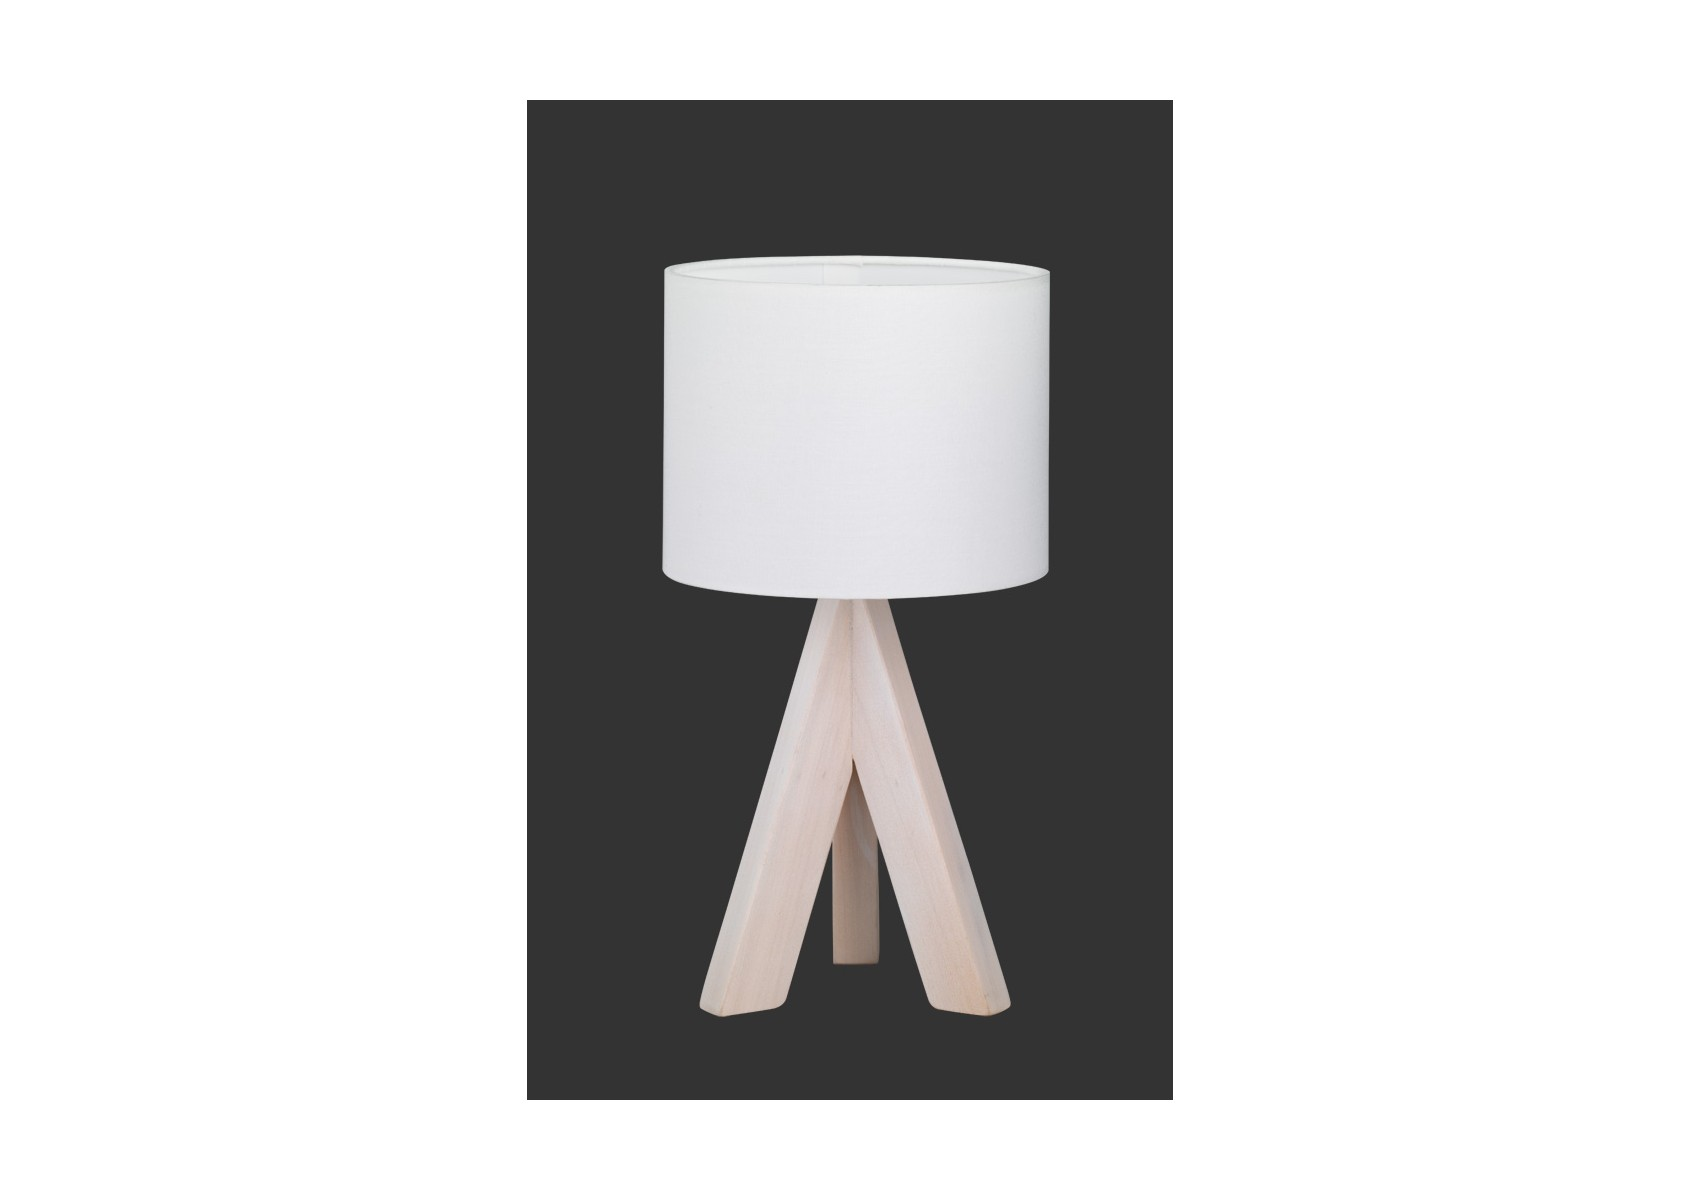 Lampe de table ging bois naturel boite design for Lampe de table rona